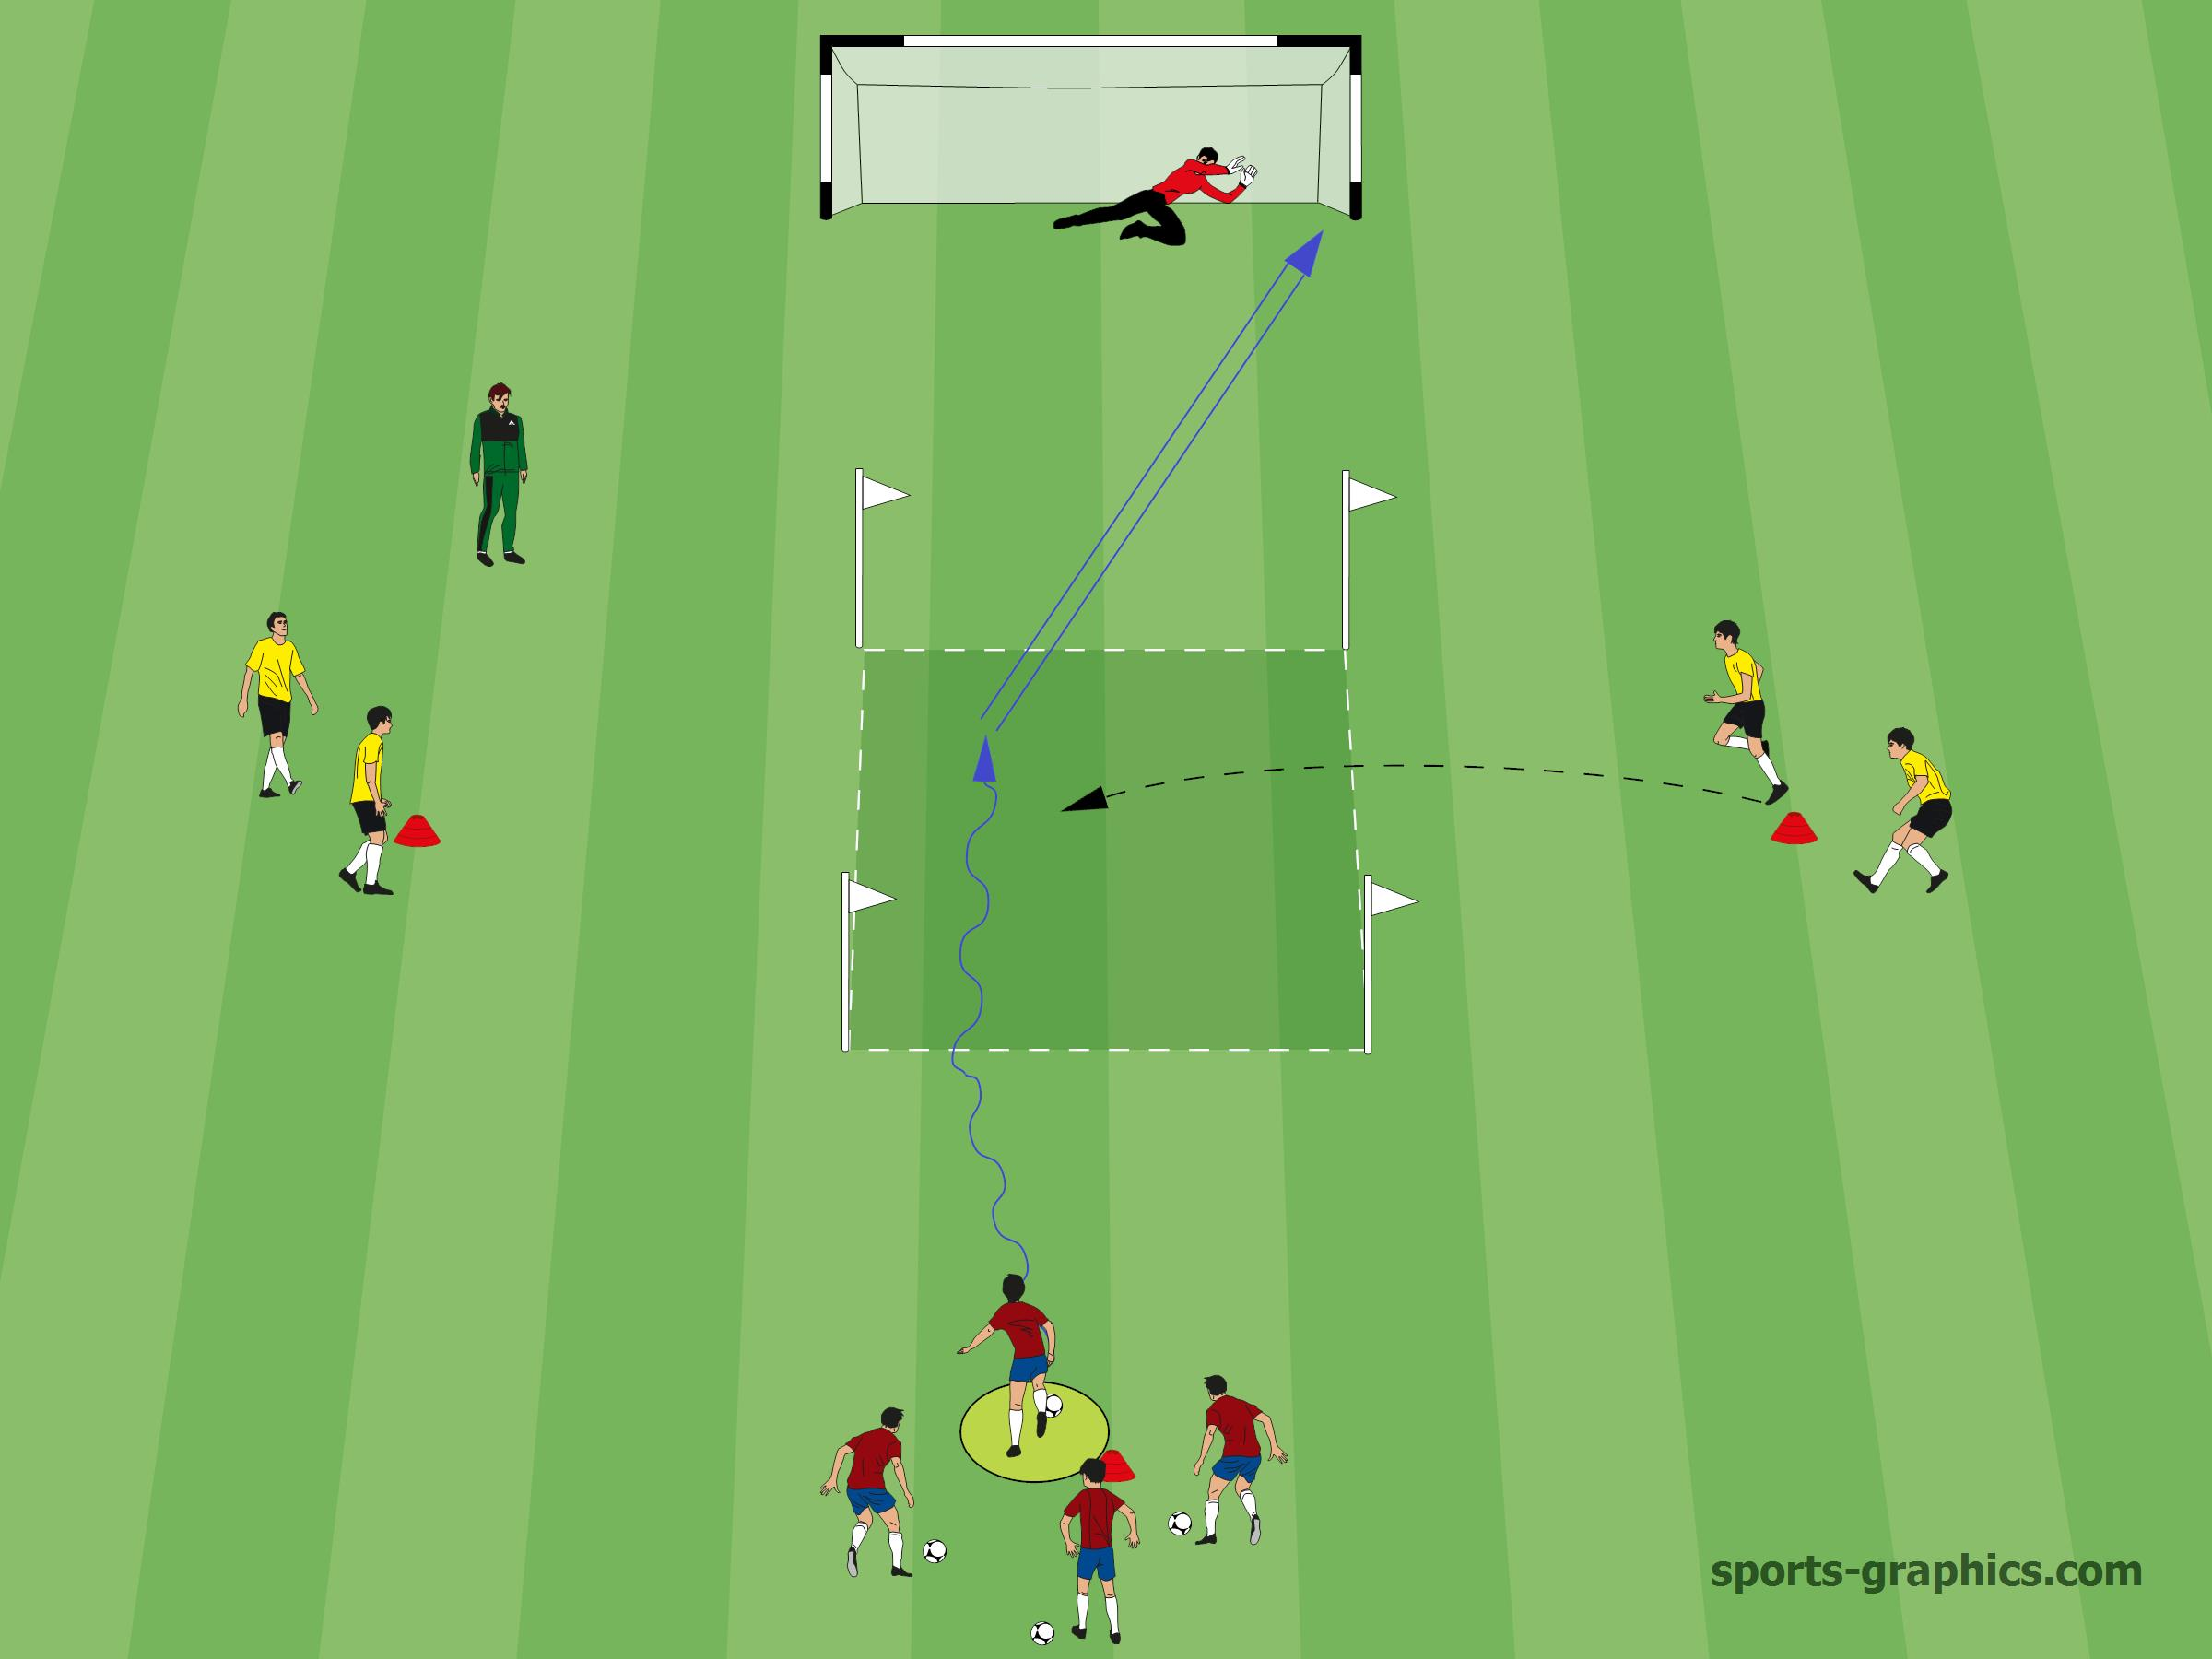 1vs1 Soccer Drills